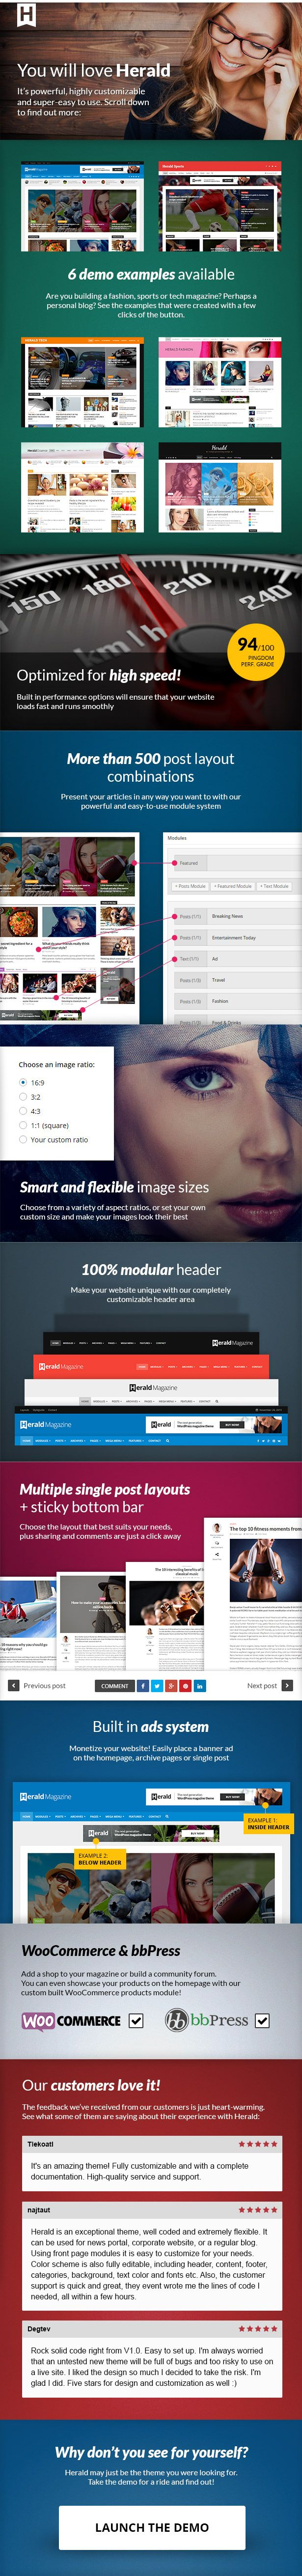 Herald - News Portal & Magazine WordPress Theme - WordPress | ThemeForest